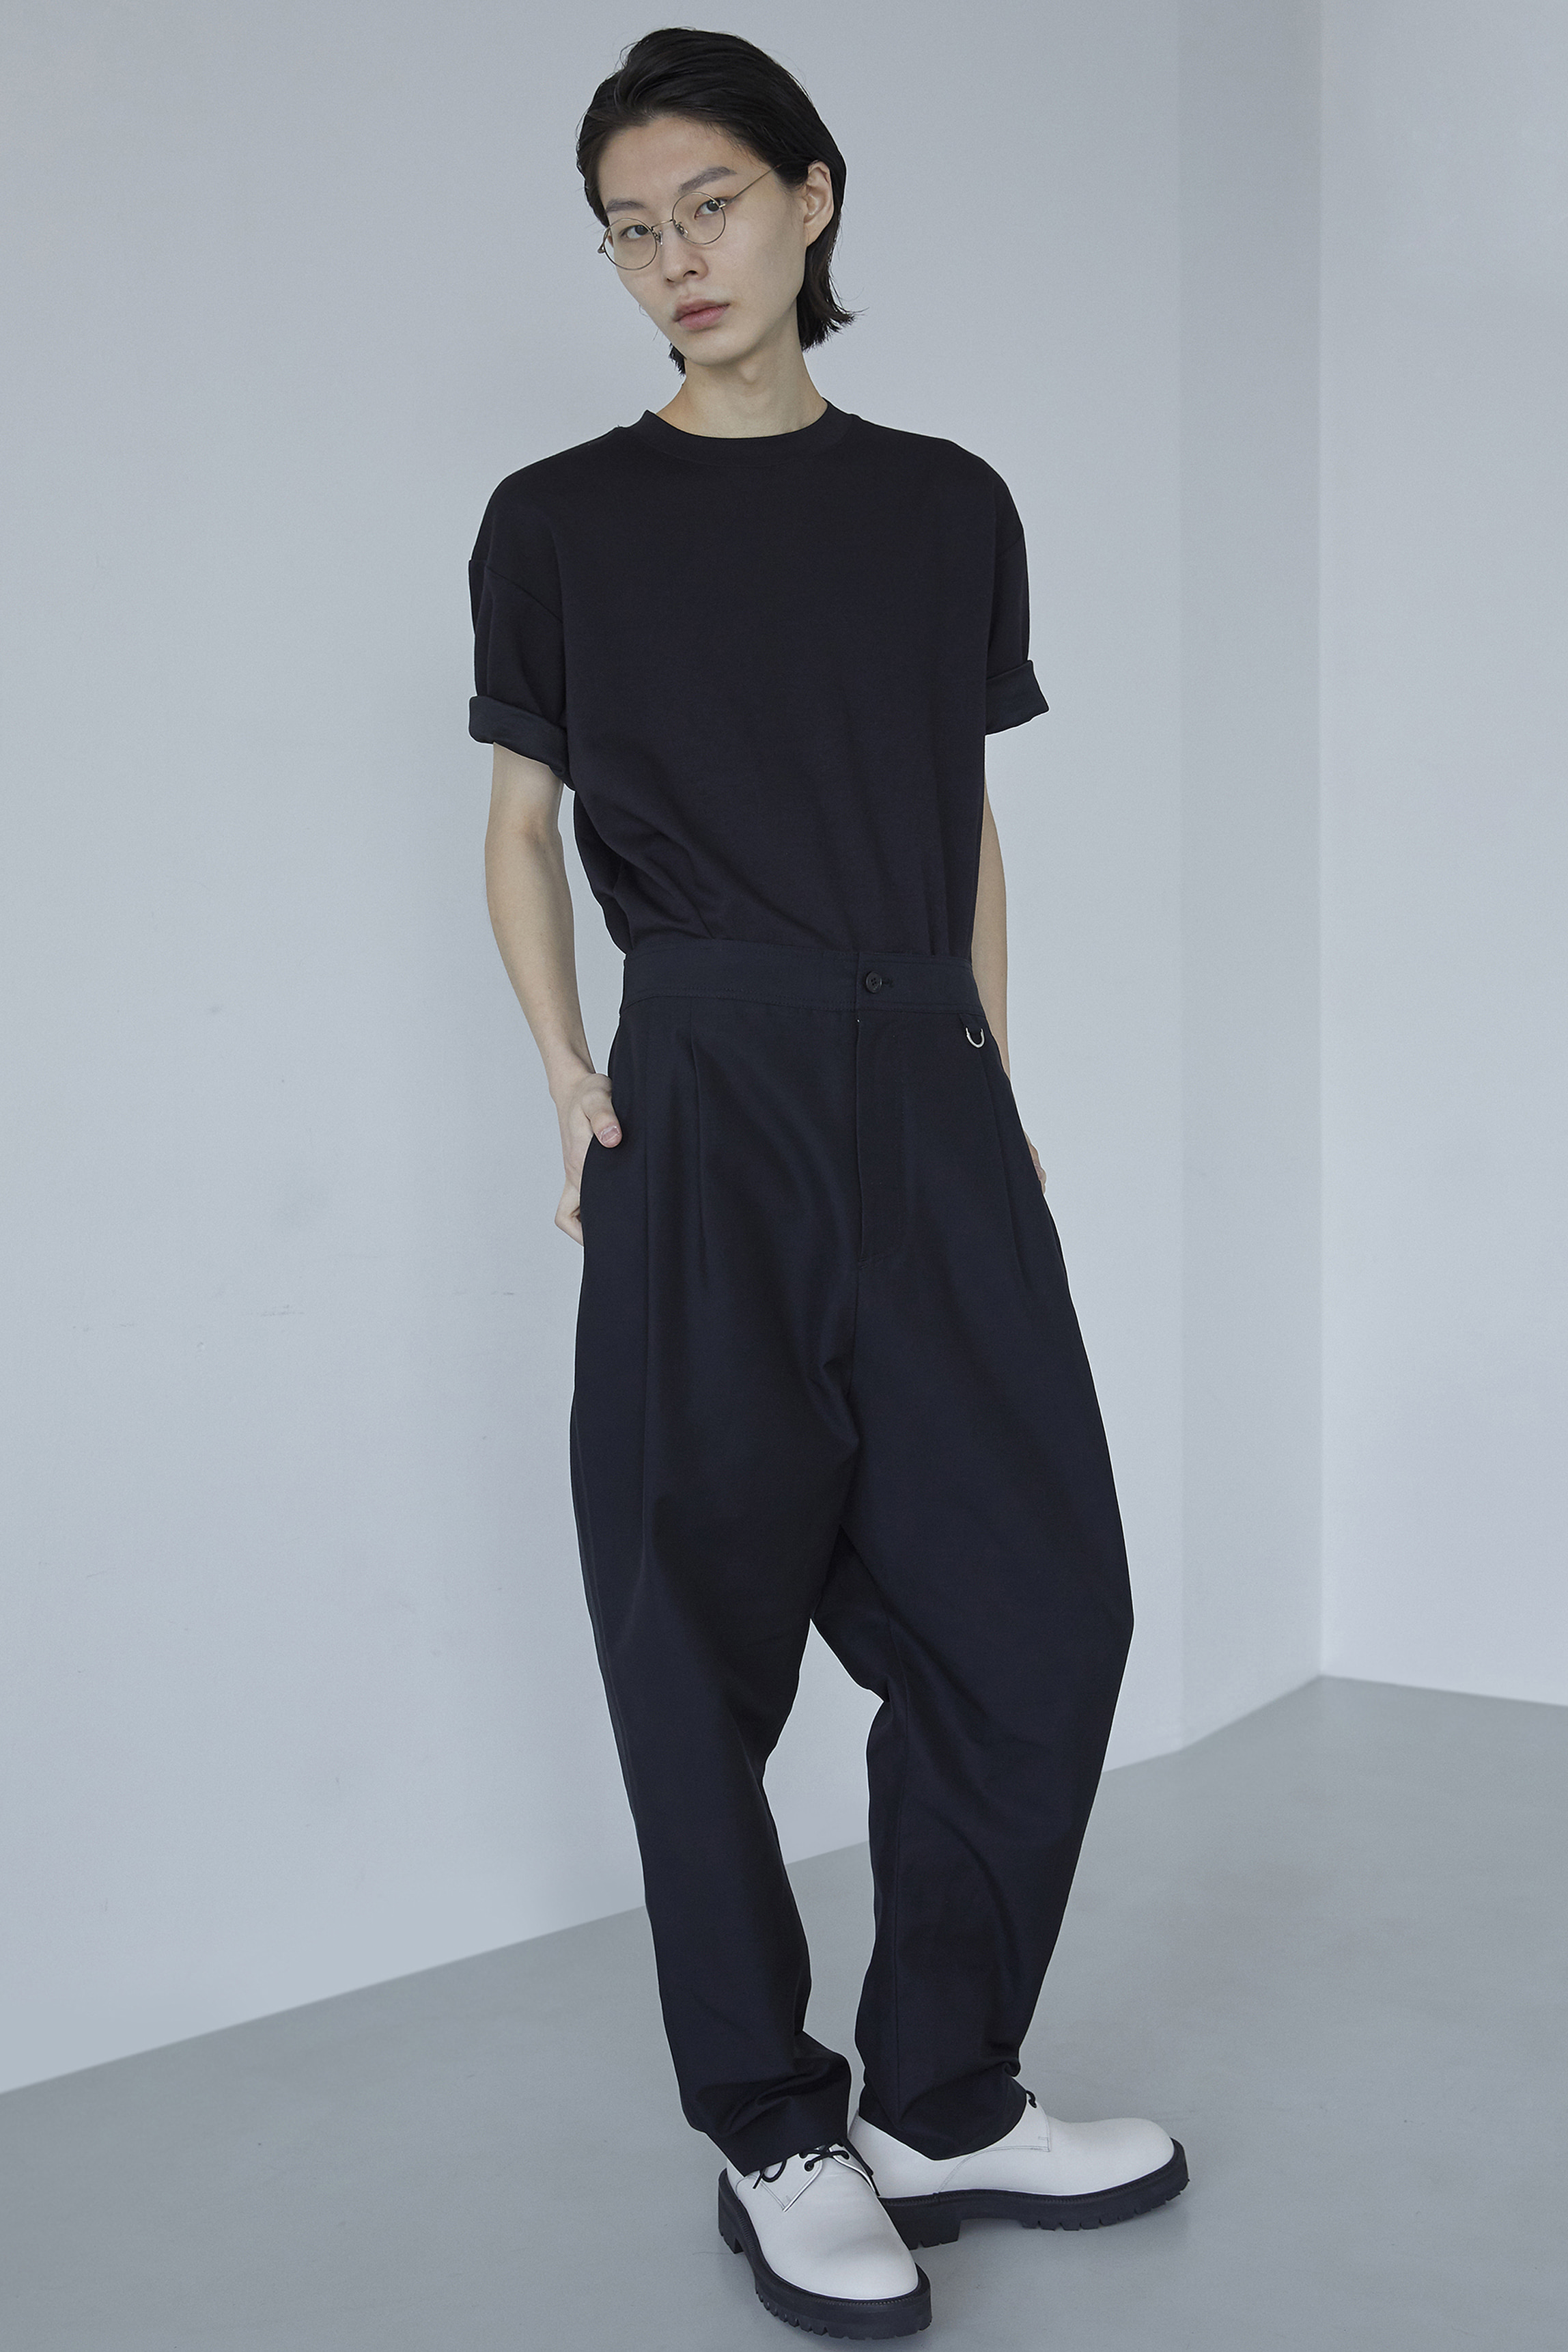 P015 / 80s Black high rise maxi pants